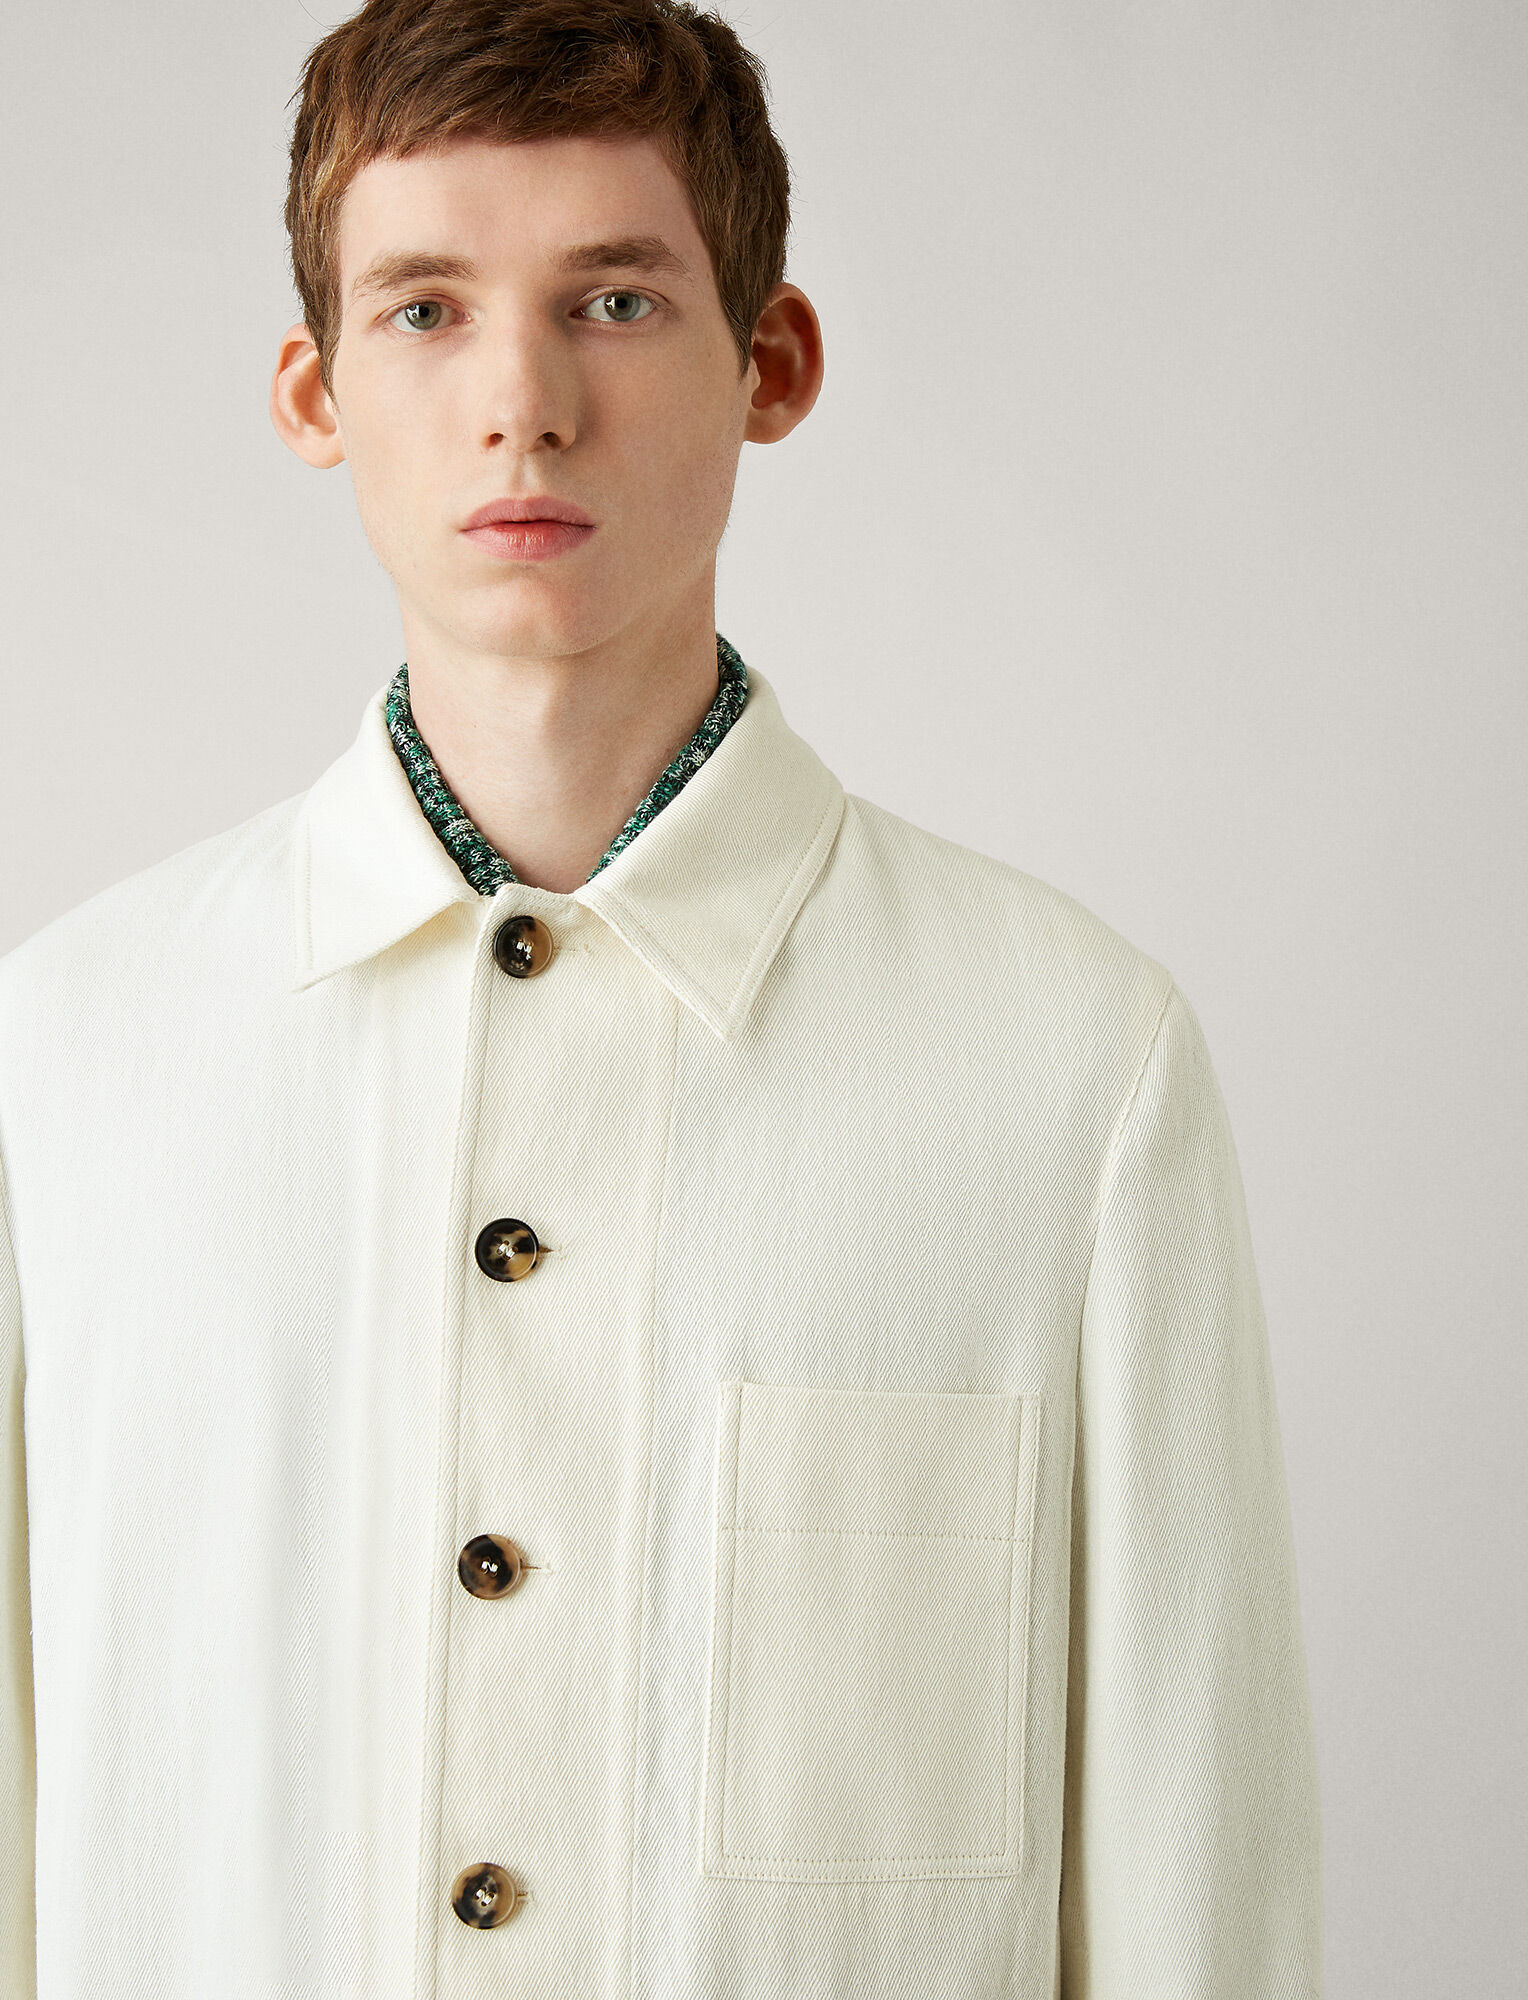 Joseph, Denis Workers Linen Jacket, in IVORY